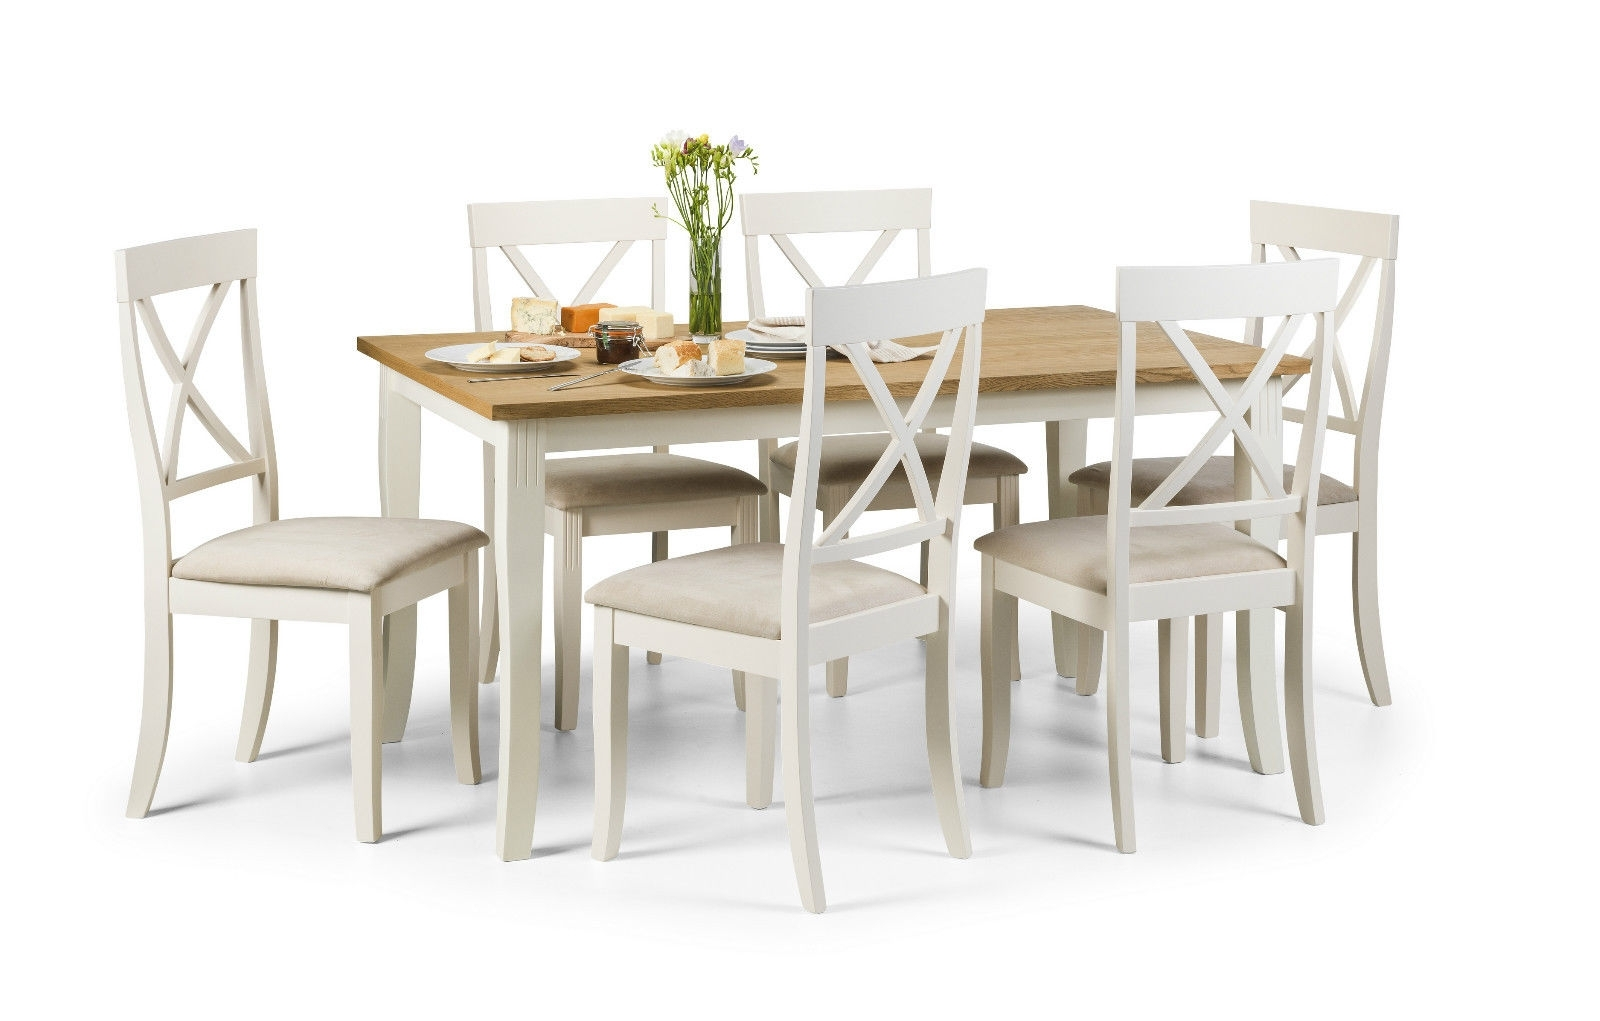 White Dining Tables With 6 Chairs For Preferred White Oak Dining Room Set Herman Miller Dining Chairs (View 22 of 25)